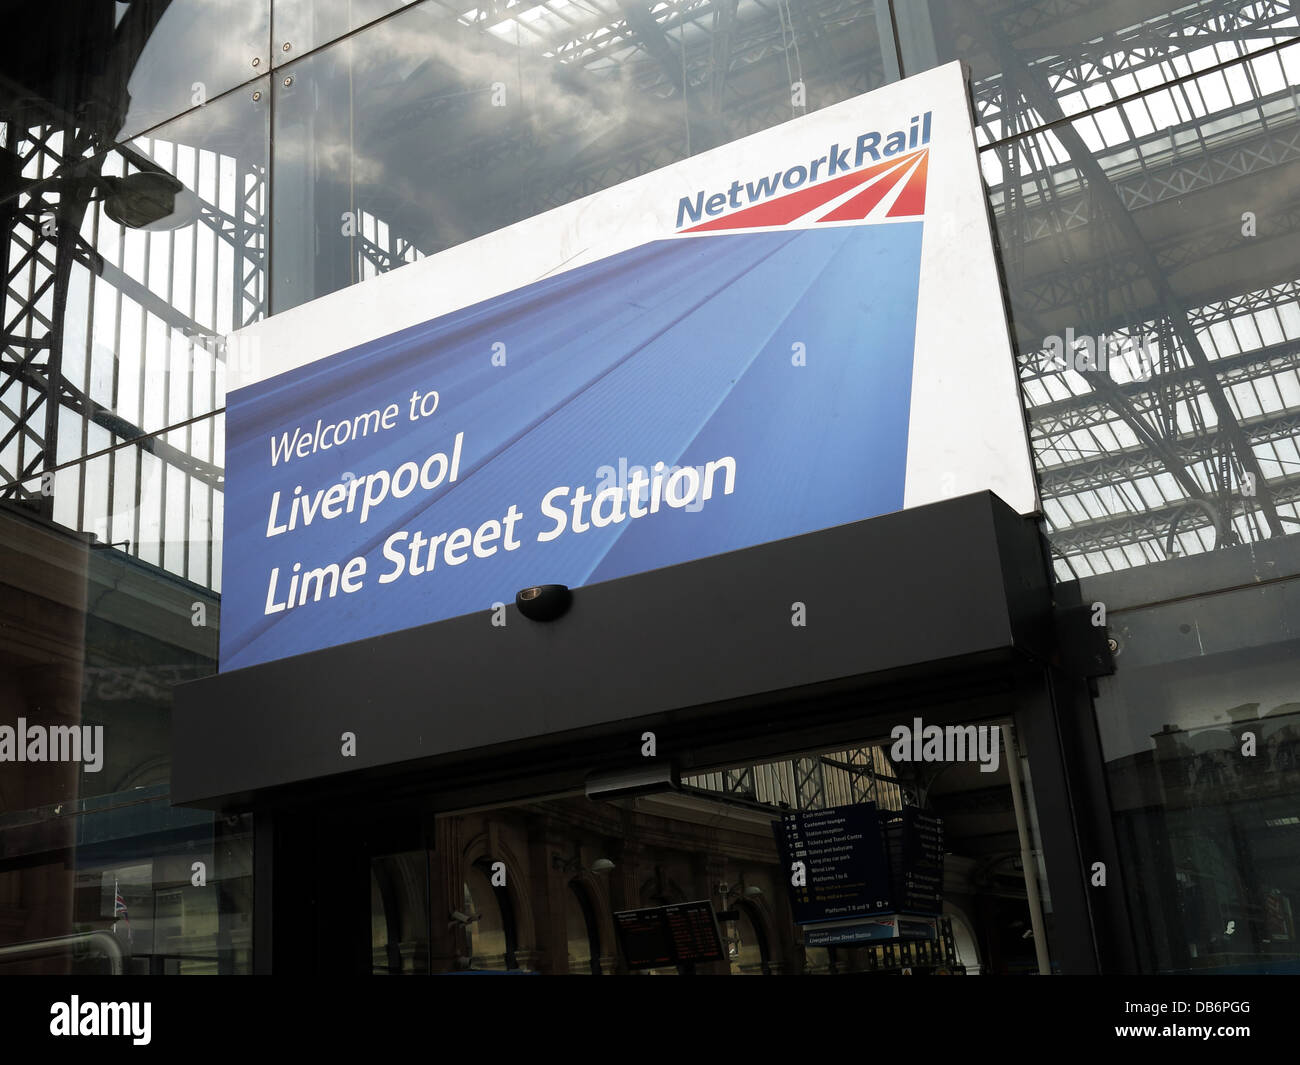 from,Network,Rail,in,English,city,in,front,of,canopy,of,mainline,station,entrance,high,speed,rail,link,intercity,train,trains,fast,railroad,nw,north,west,northwest,England,Virgin,franchise,st,limeSt,LimeStreet,main,line,terminus,Coast,TransPennine,Express,NetworkRail,managed,by,curved,iron,roof,gotonysmith regional overground Merseyside redevelopment L1 1JD L11JD,Buy Pictures of,Buy Images Of